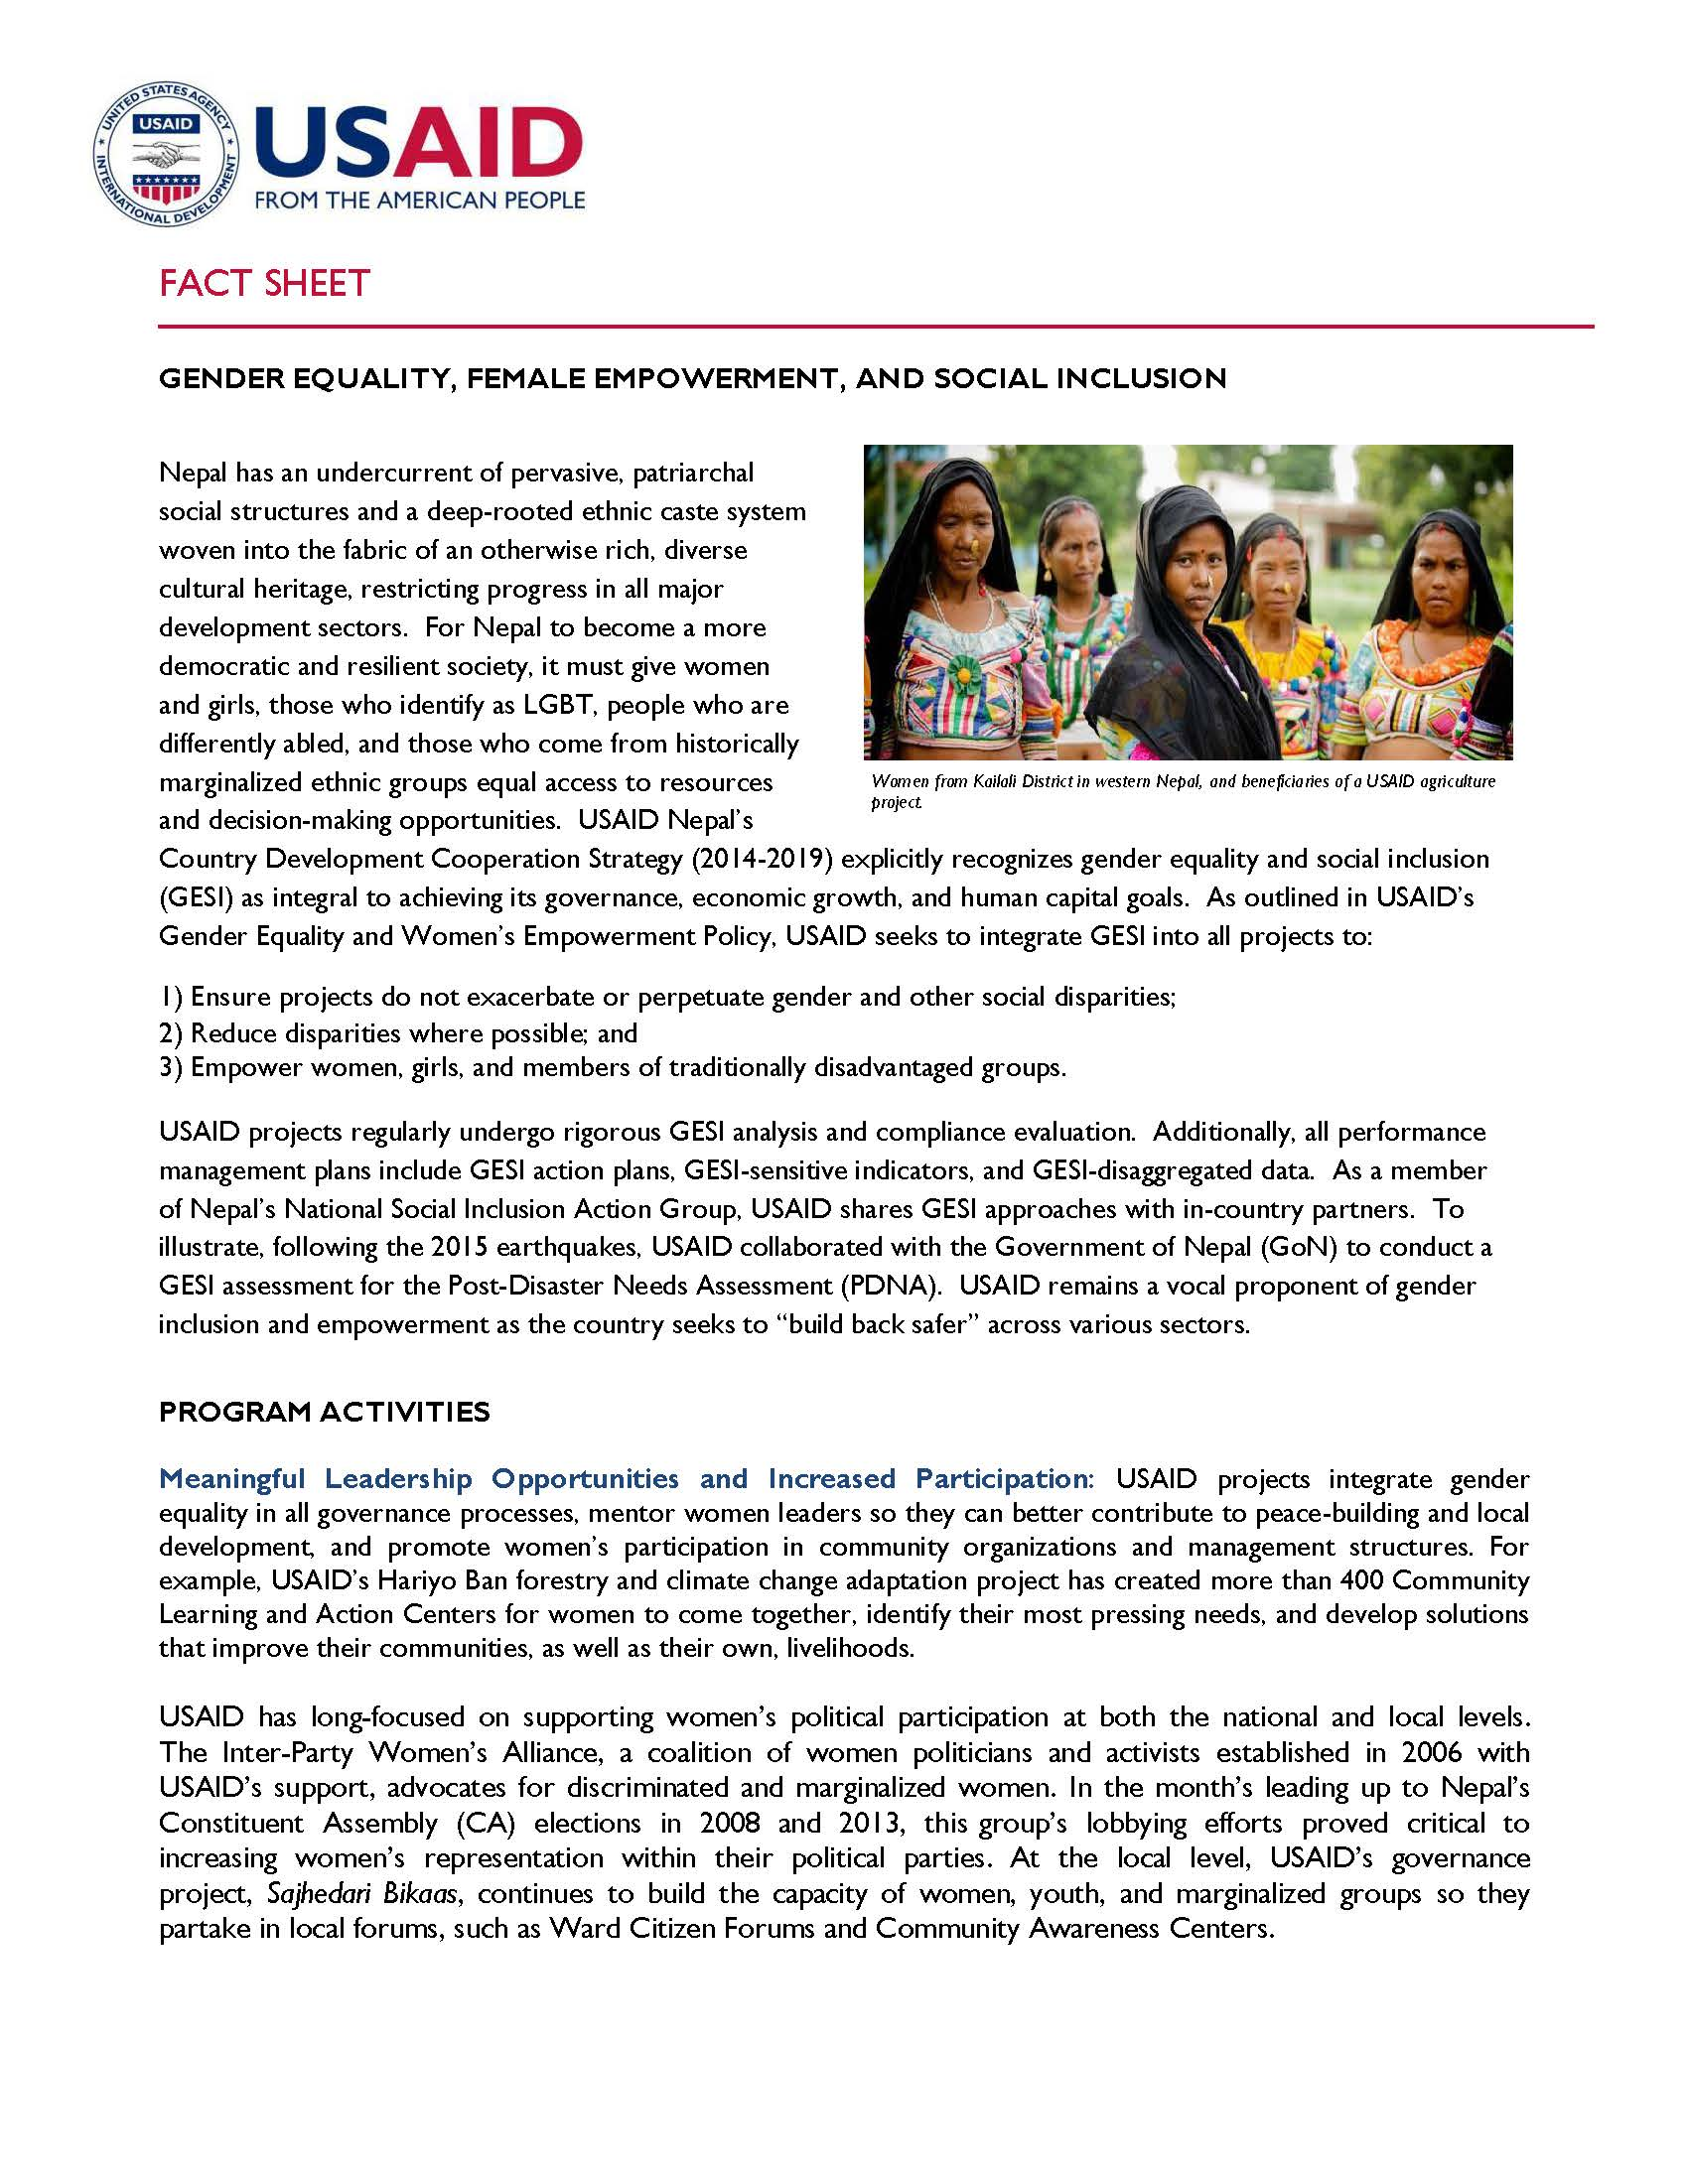 001 Essay On Gender Discrimination In Nepal Final Gesi Factsheet Page 1 2 Incredible Full